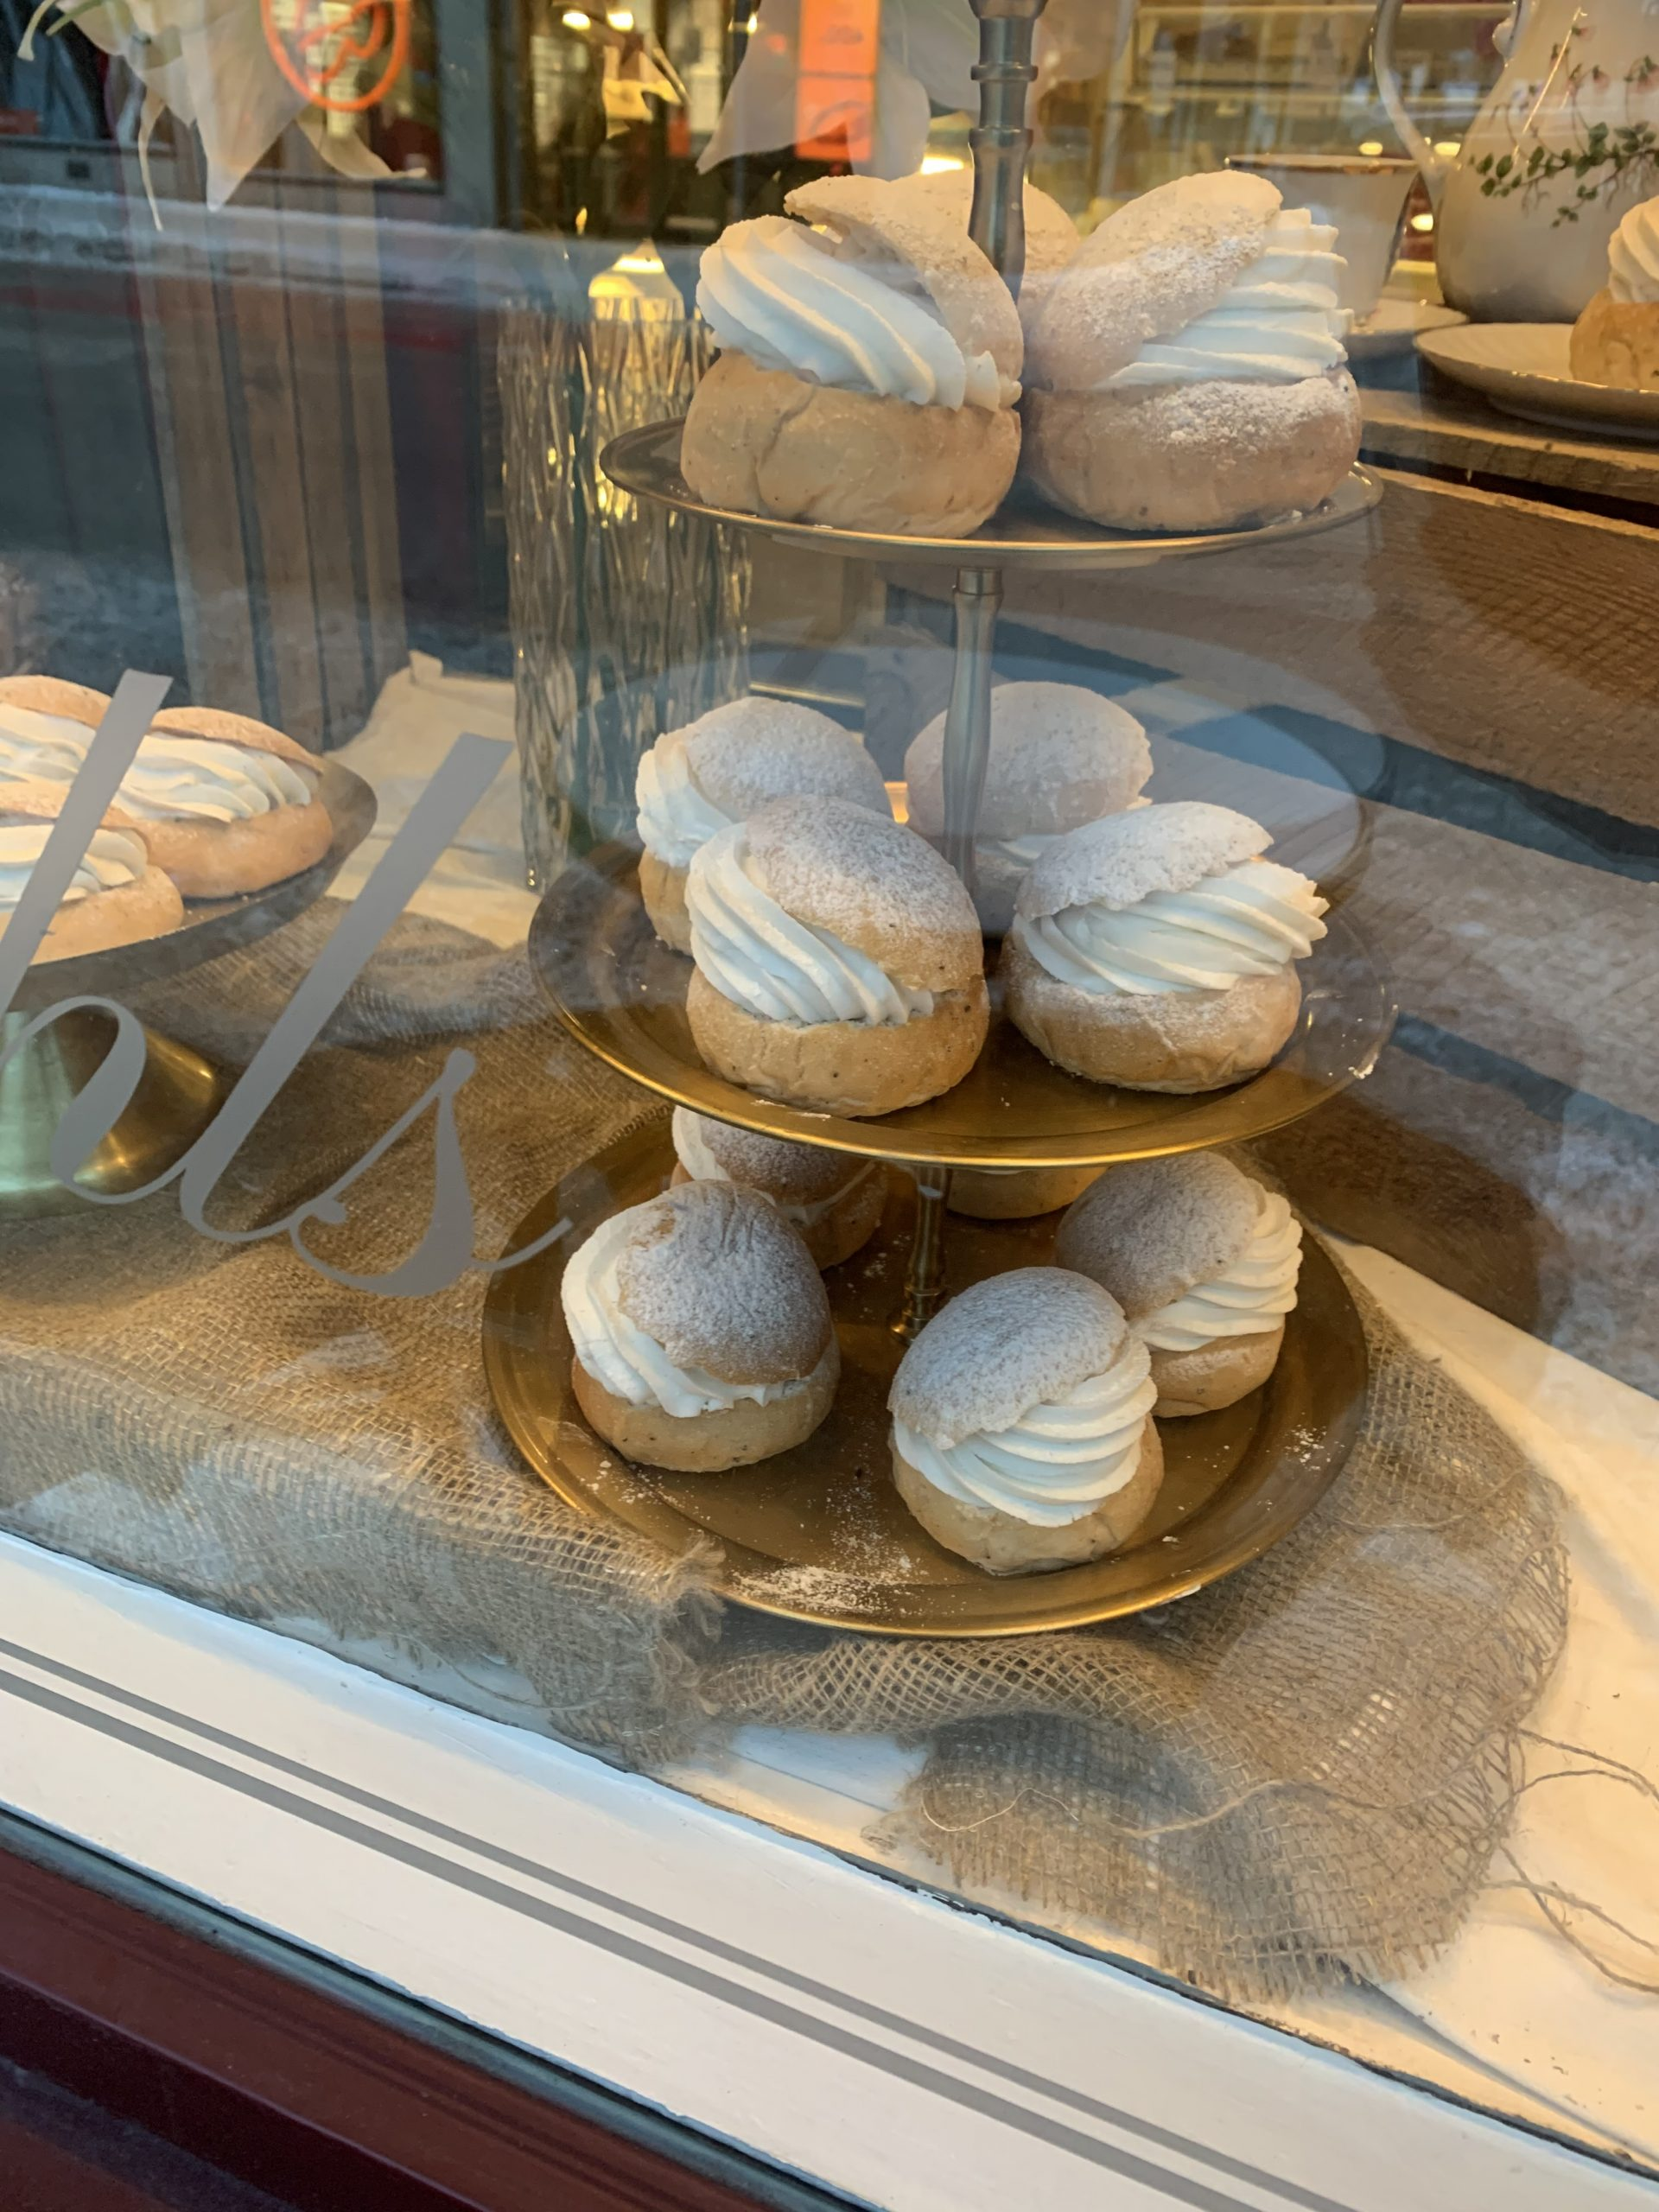 pastries behind glass window